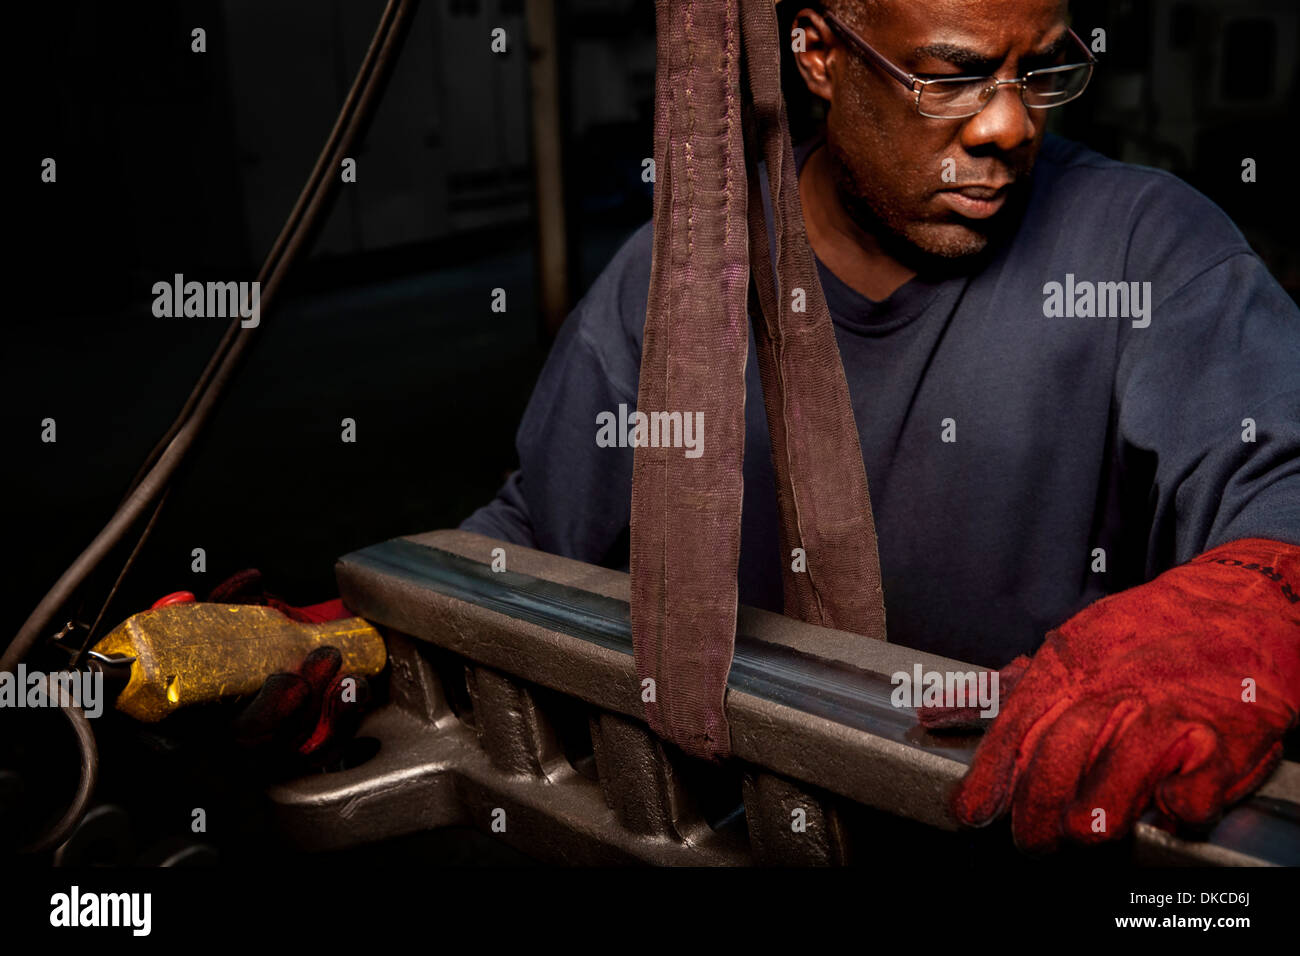 Lifting up a rack bar to be machined - Stock Image